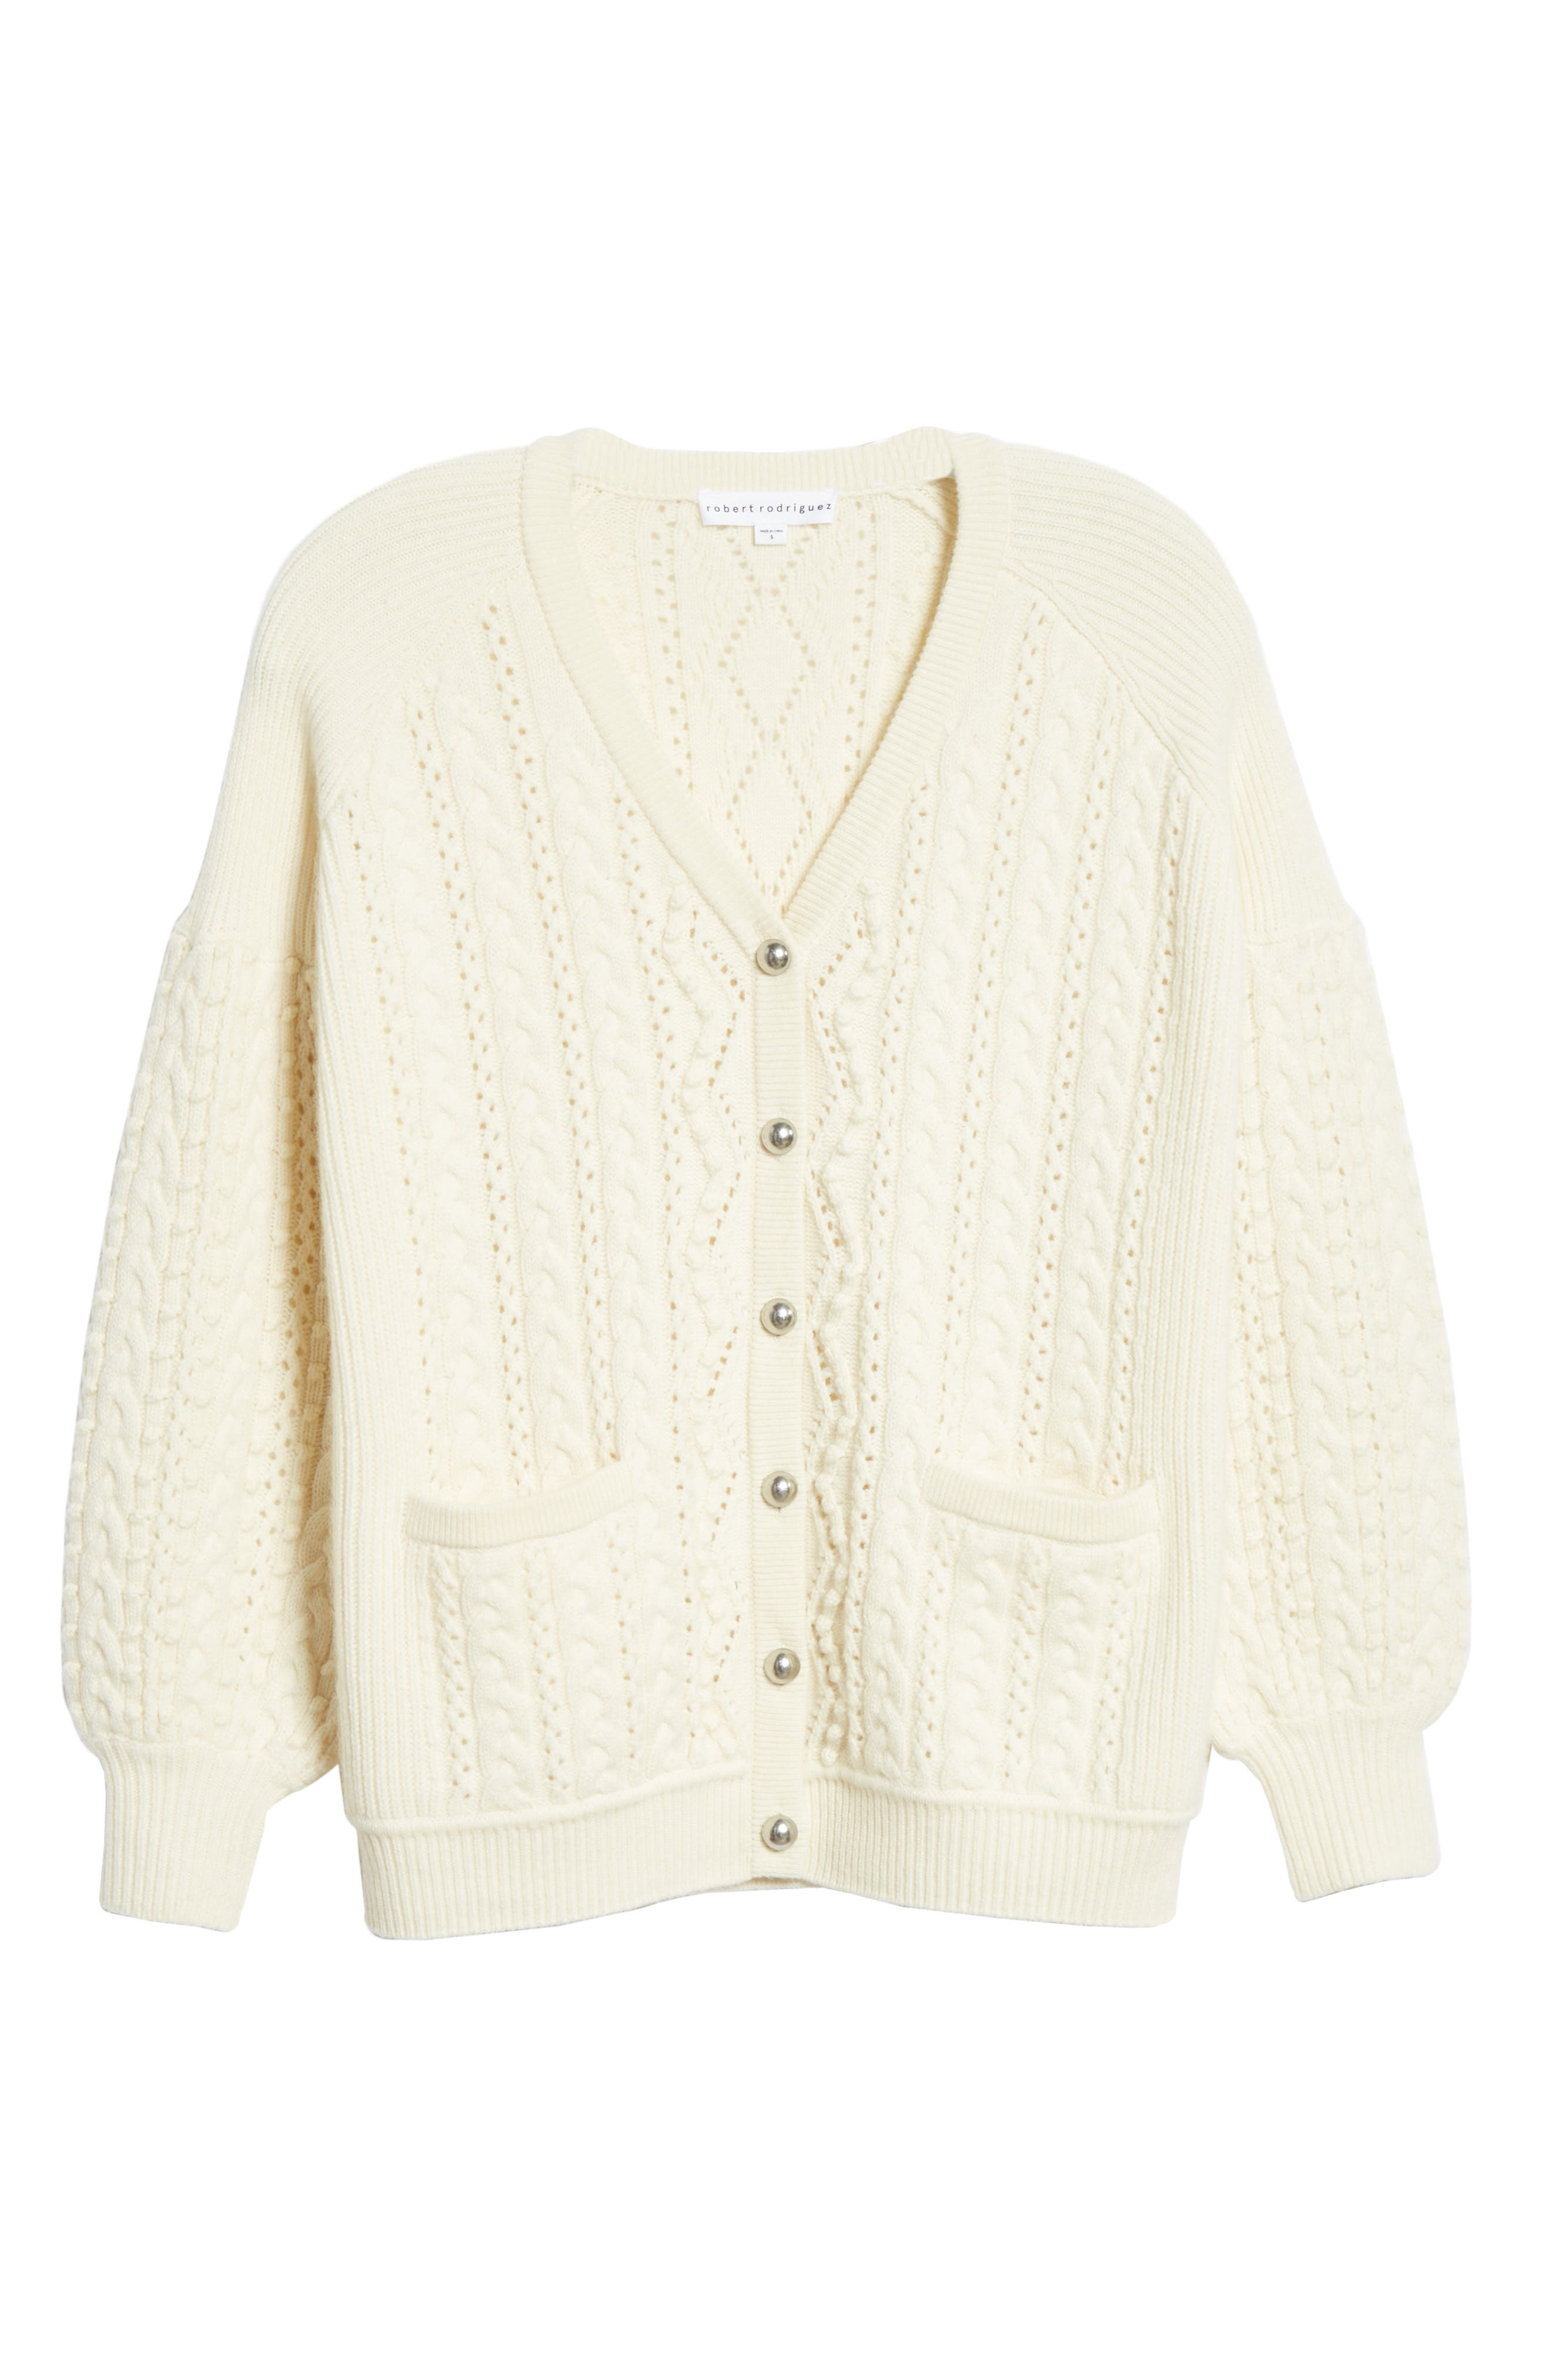 Cable Knit Wool & Cashmere Cardigan,                             Alternate thumbnail 6, color,                             IVORY